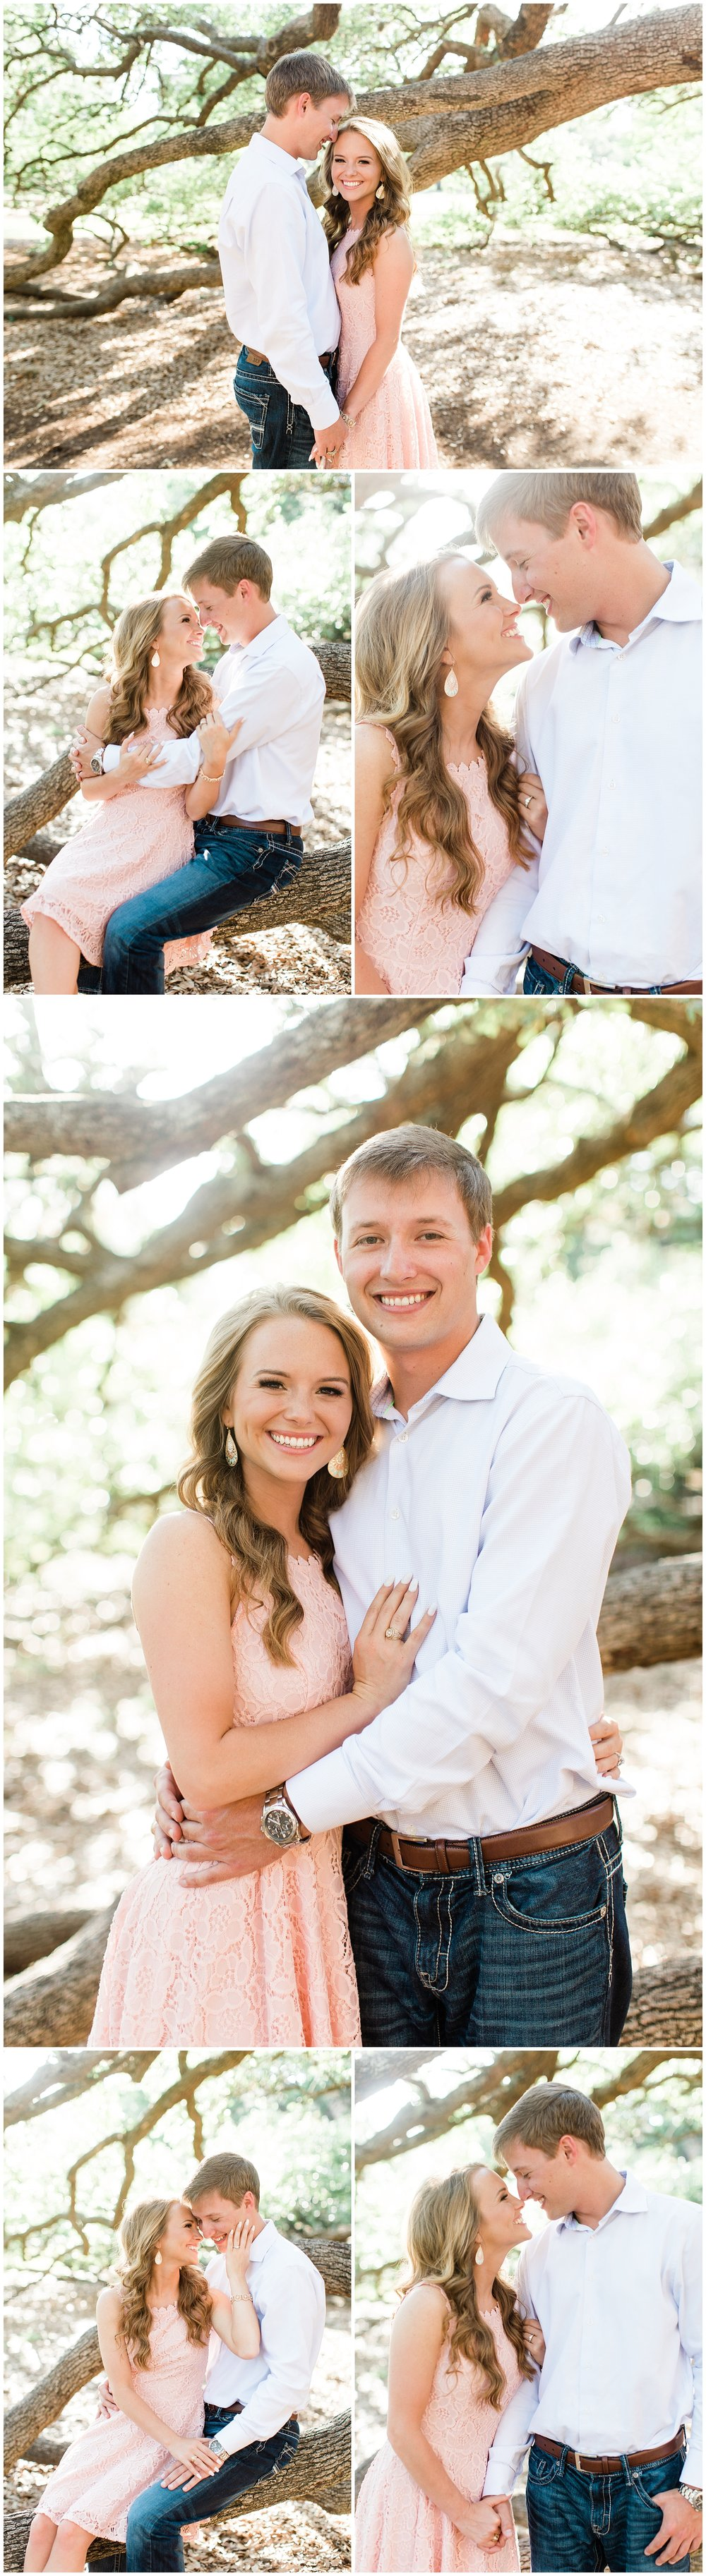 Texas_A&M_Engagement_Session_Kristina_Ross_Photography_0003.jpg